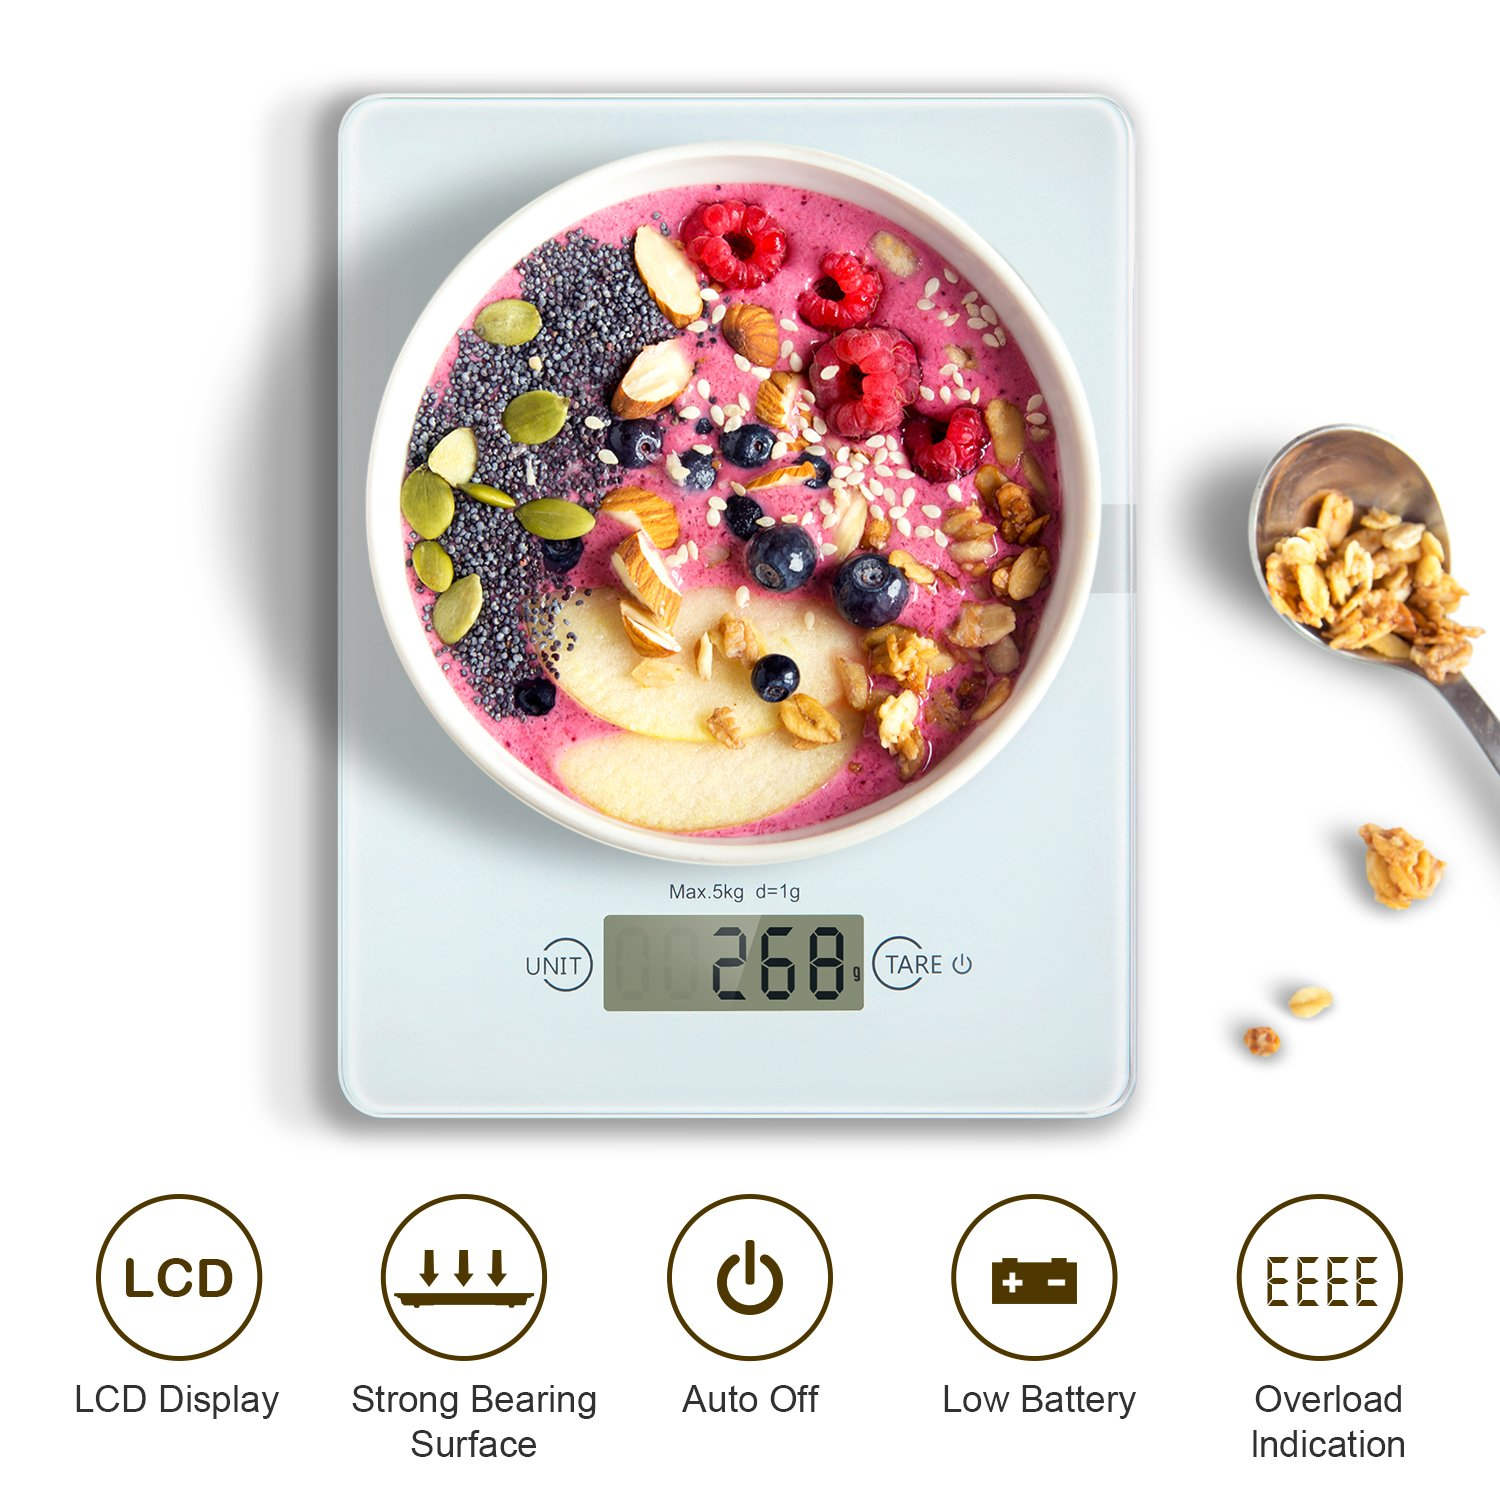 Digital Kitchen Cooking Scales, HAMSWAN Kitchen Food Scale, Weighing Scales, Ultra-Slim, Easy to Clean with Accurate Precision, LCD Display, 4 Units, 11lb 5kg, for Home Baking Diet Cooking